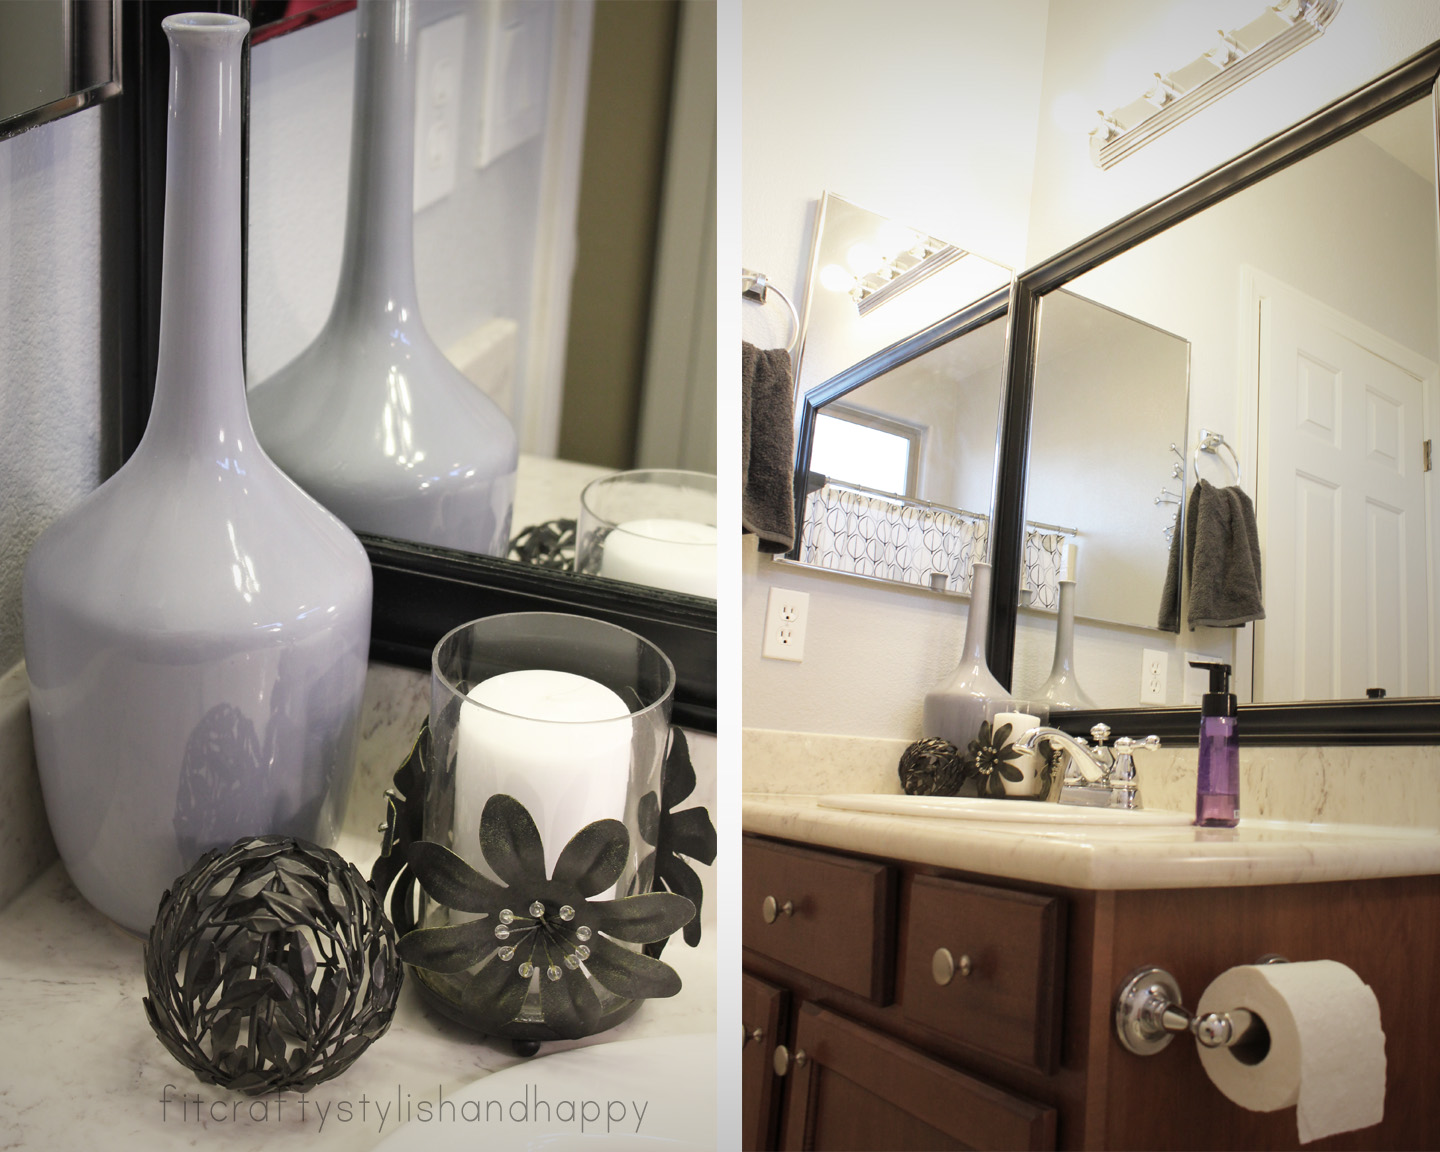 Black White And Grey Bathroom Ideas : Fit crafty stylish and happy guest bathroom makeover